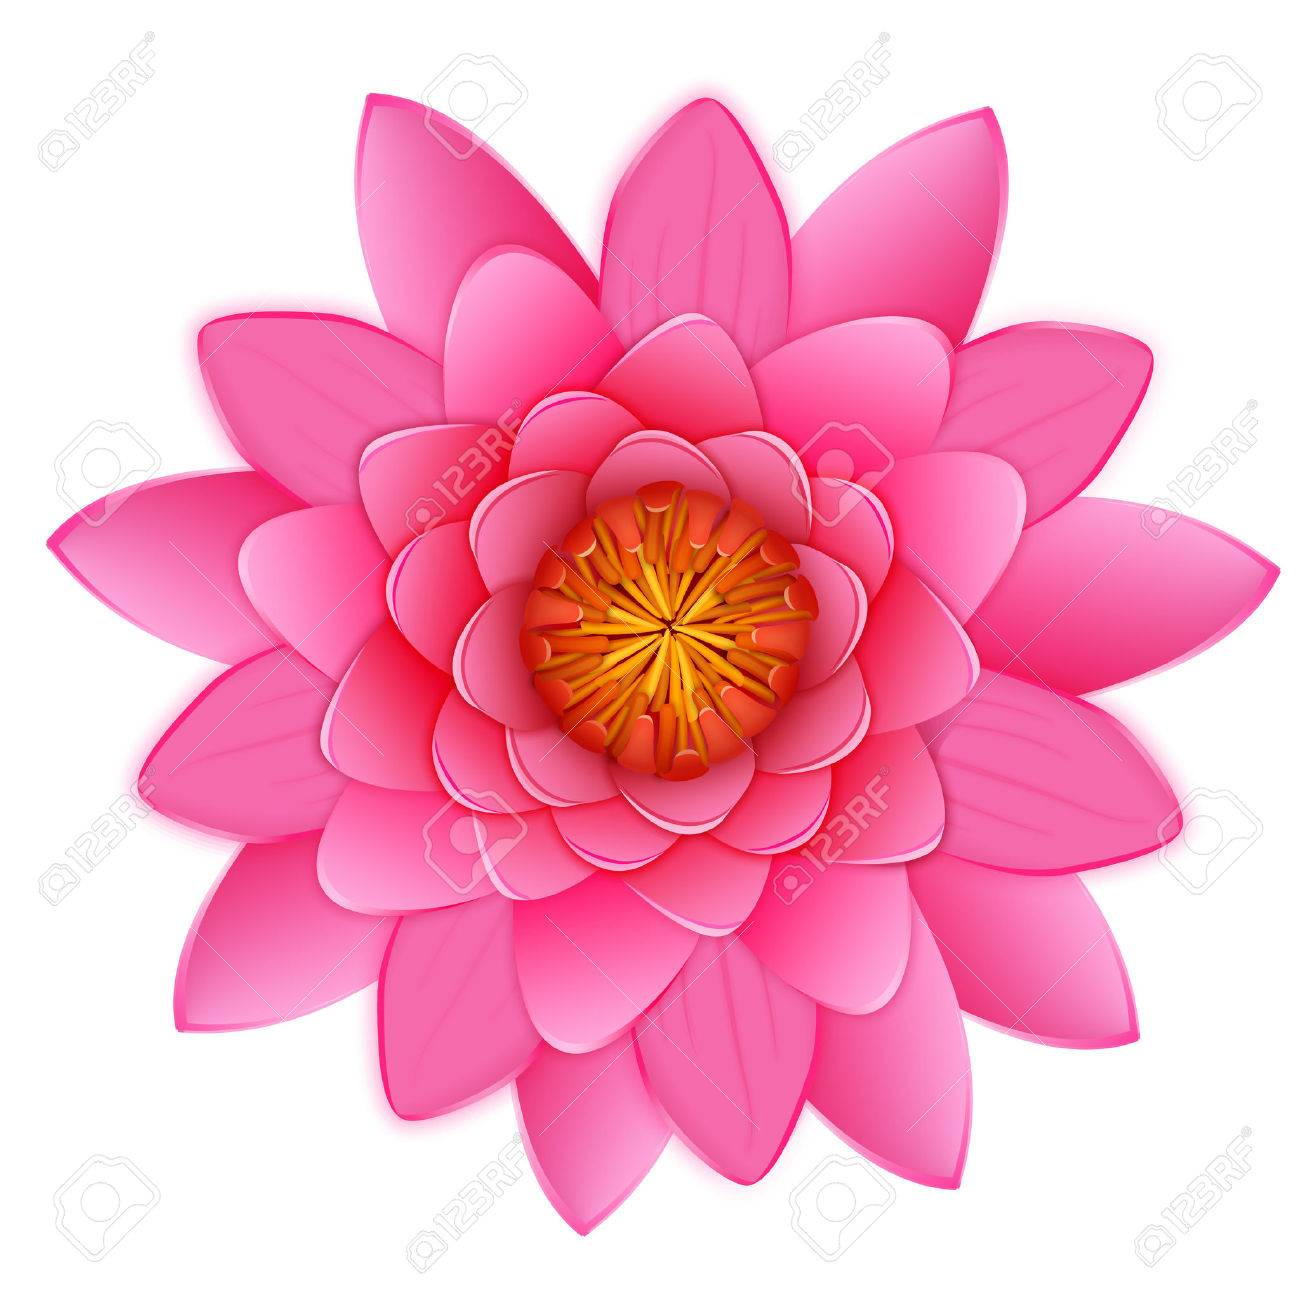 50682 single flower cliparts stock vector and royalty free single beautiful pink lotus or waterlily flower isolated on white background vector illustration for your pretty mightylinksfo